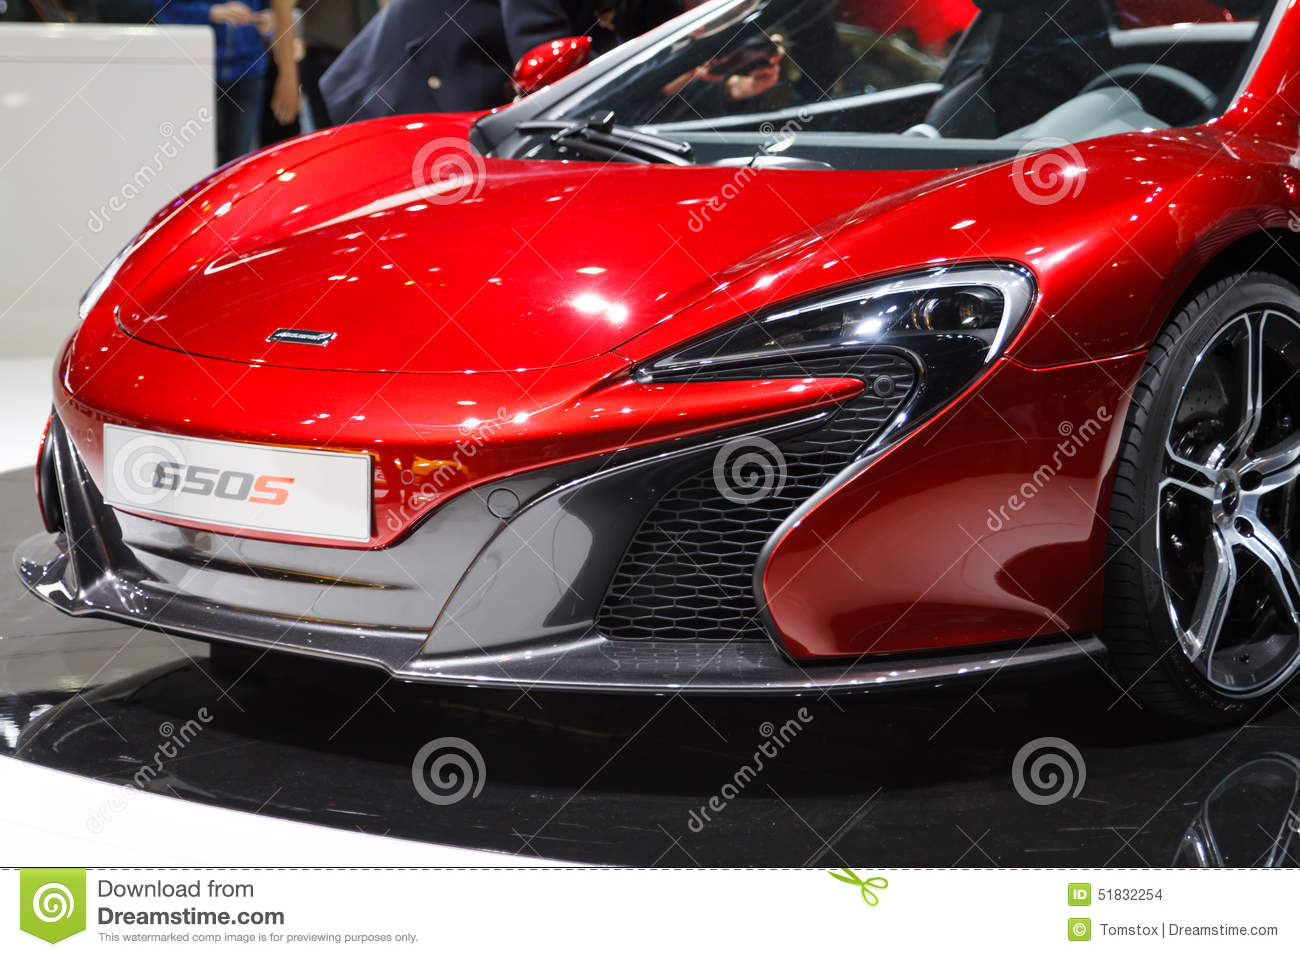 salon de l 39 automobile rouge de mclaren 650s gen ve 2015 image stock ditorial image du rouge. Black Bedroom Furniture Sets. Home Design Ideas